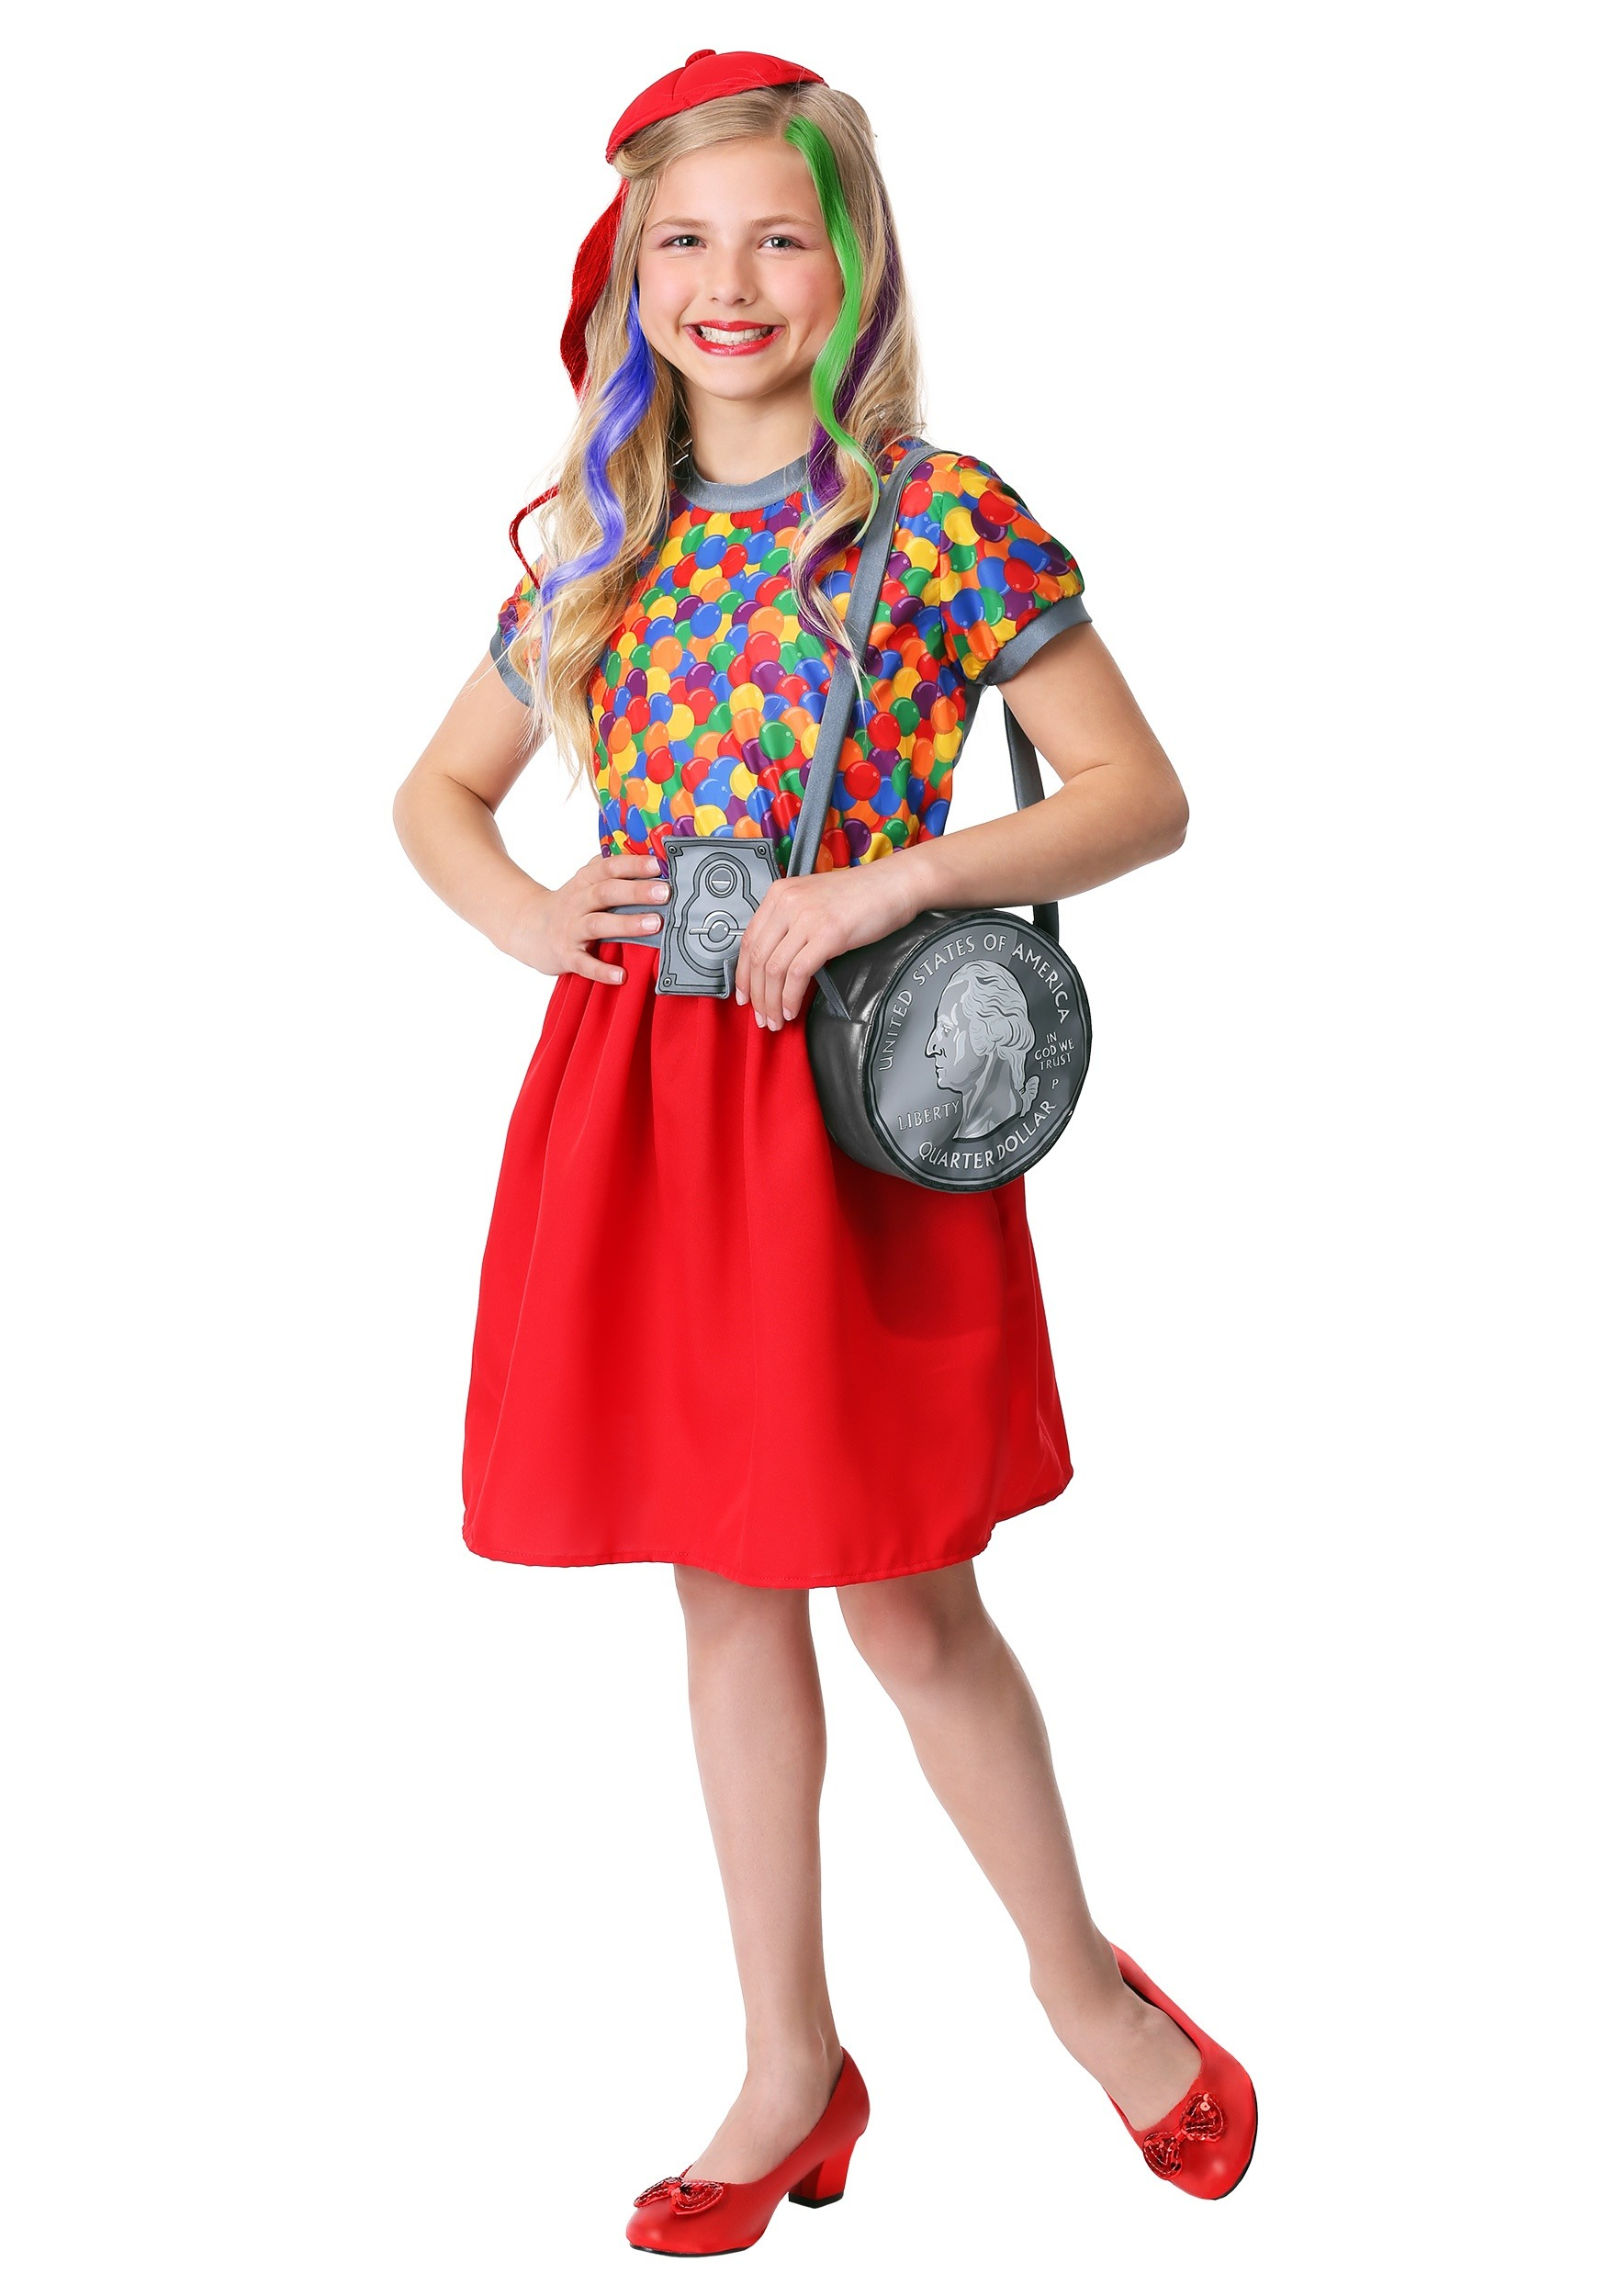 Gumball Machine Girl's Costume